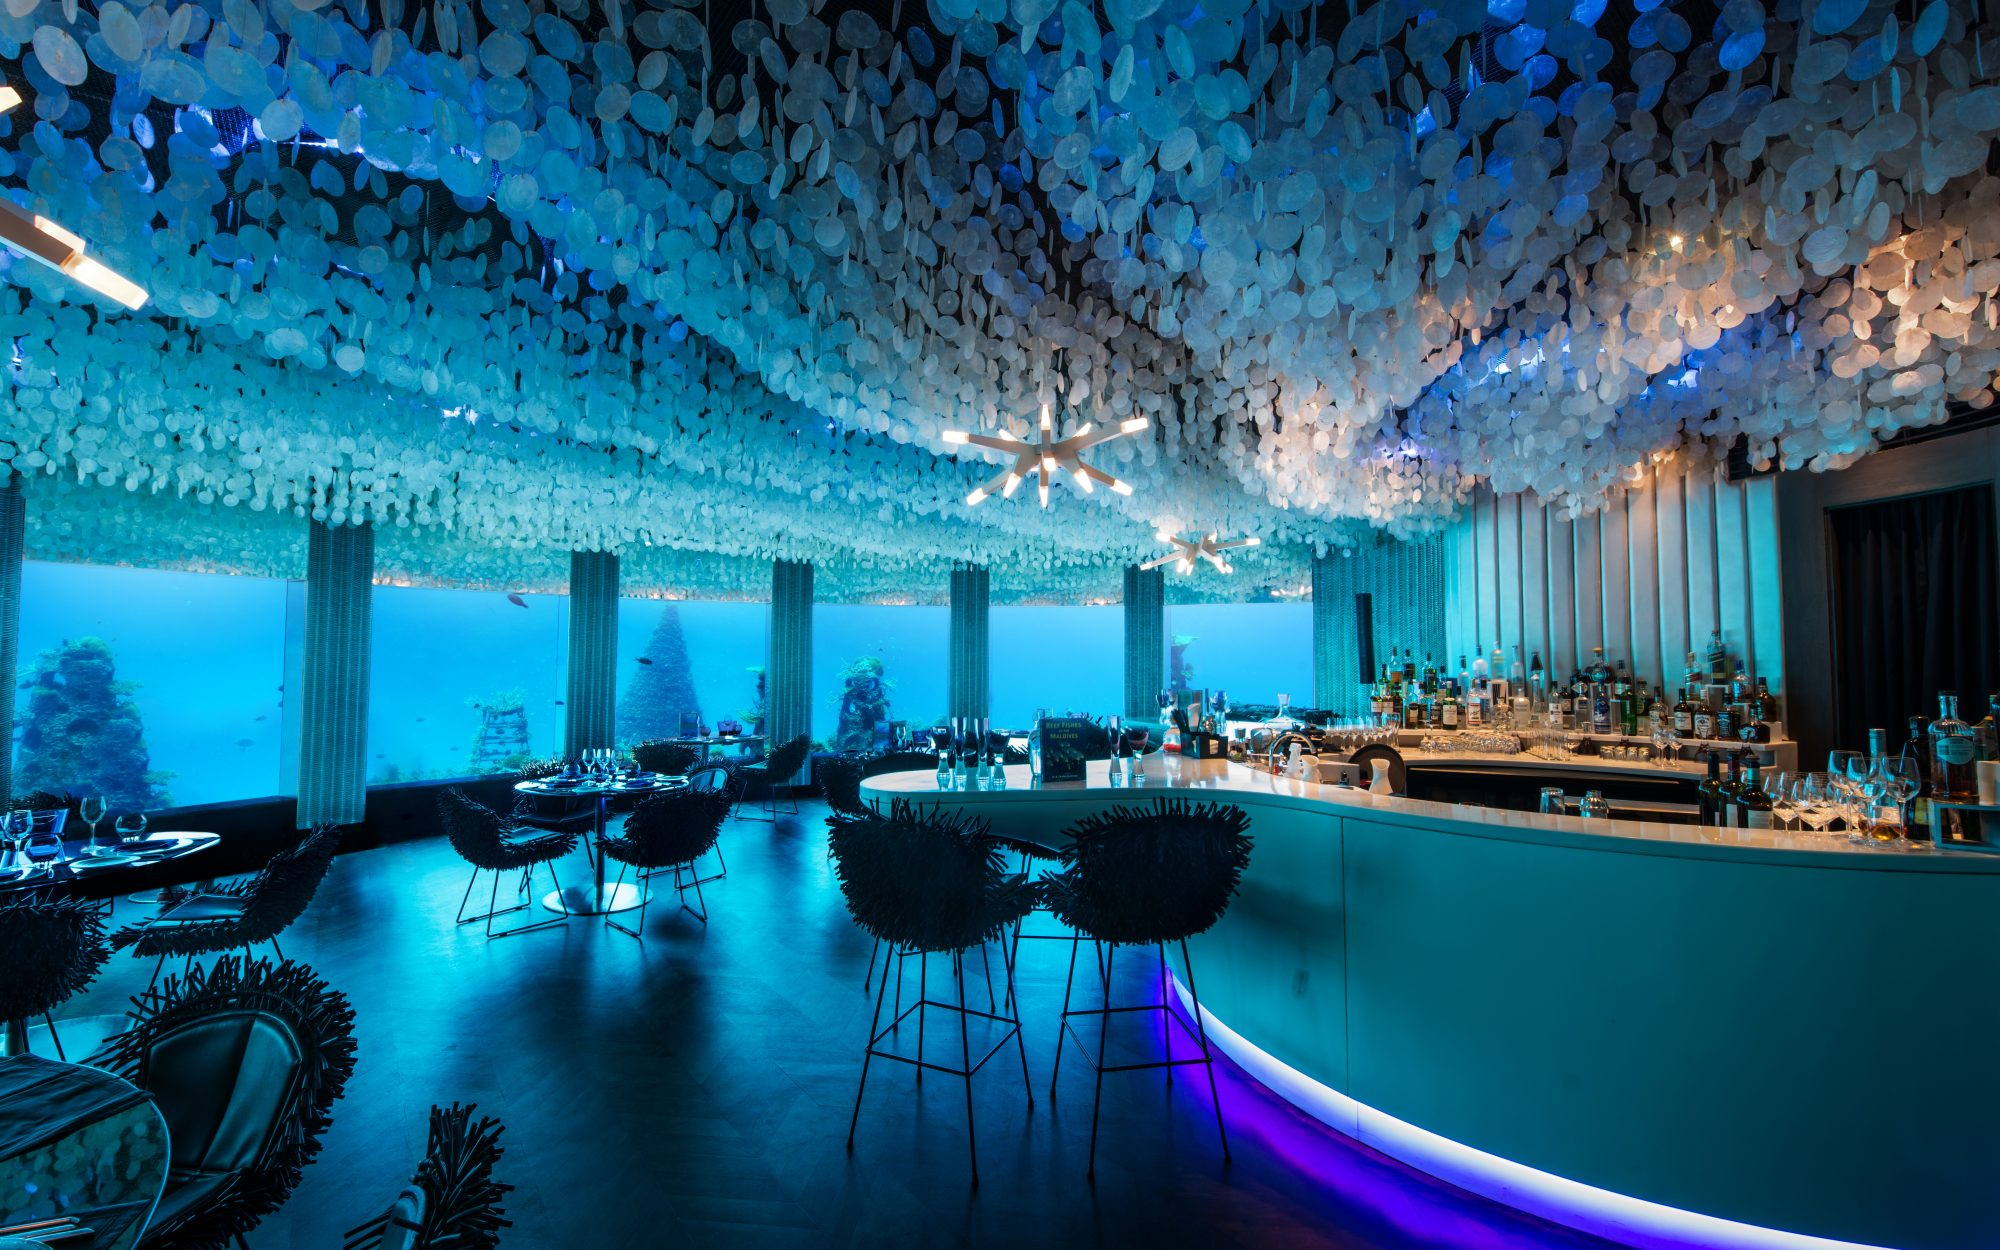 Explore the Maldives's Underwater Restaurant and Club